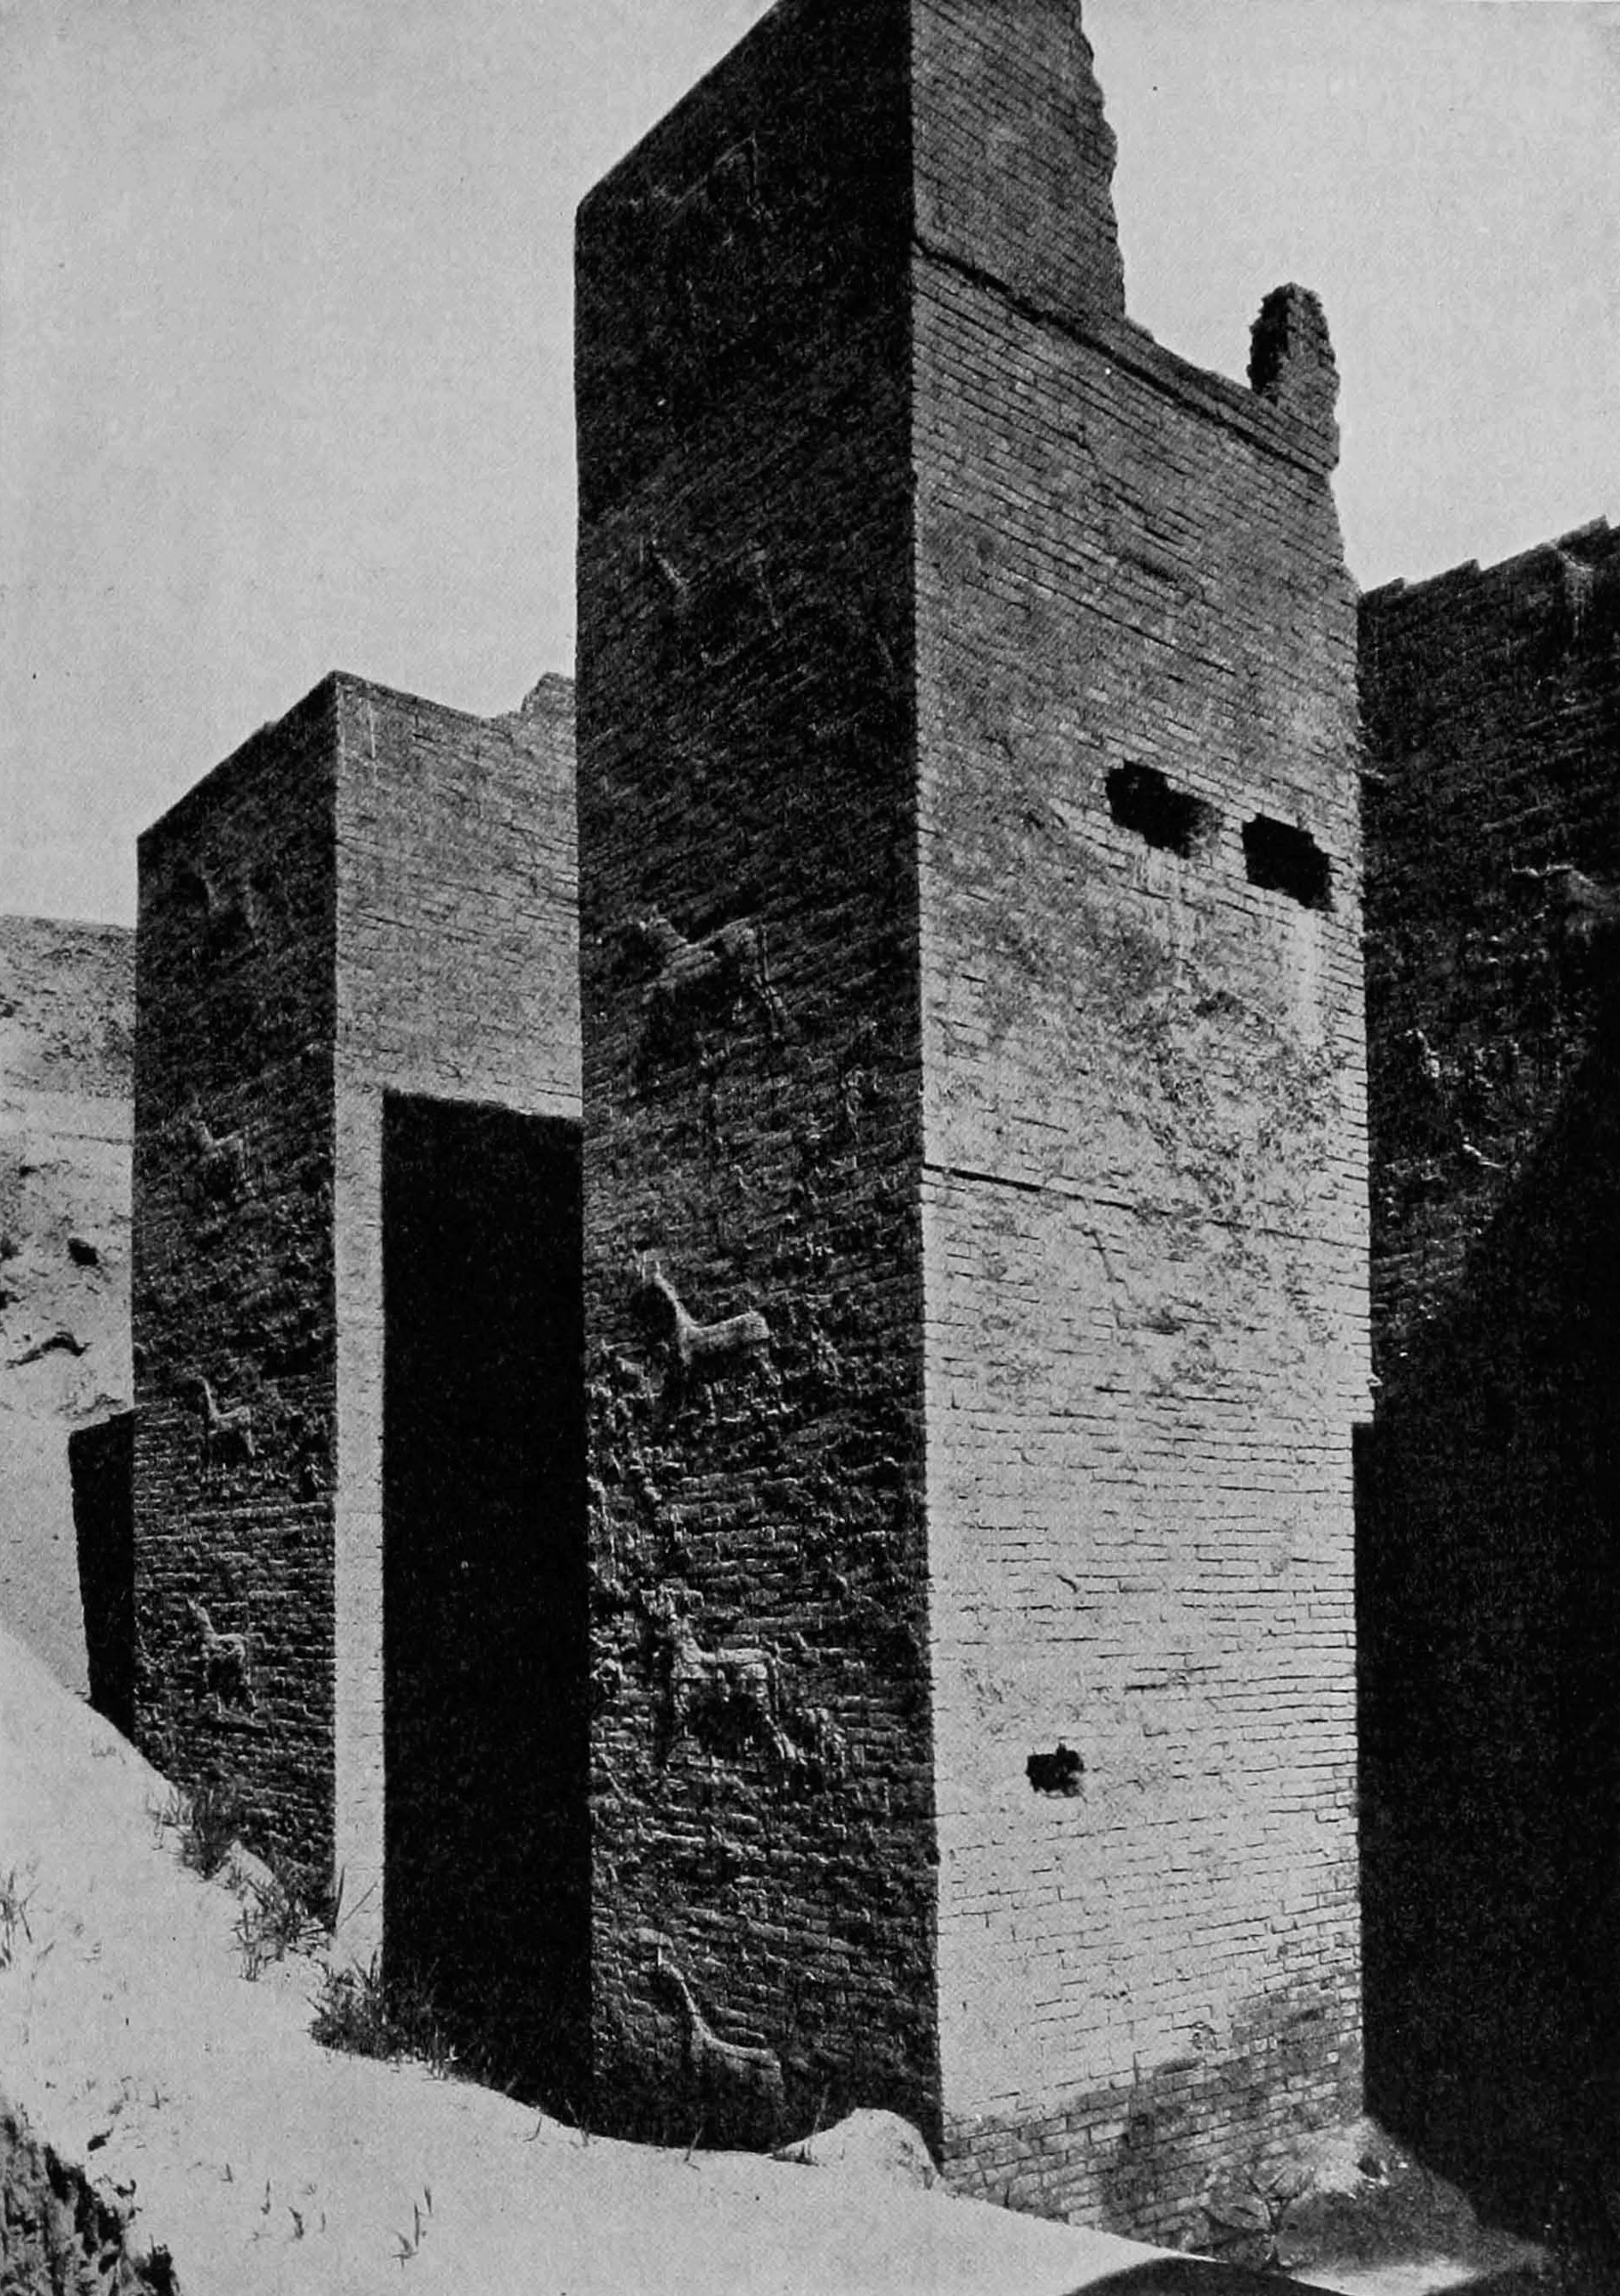 Gate towers of Ishtar Gate